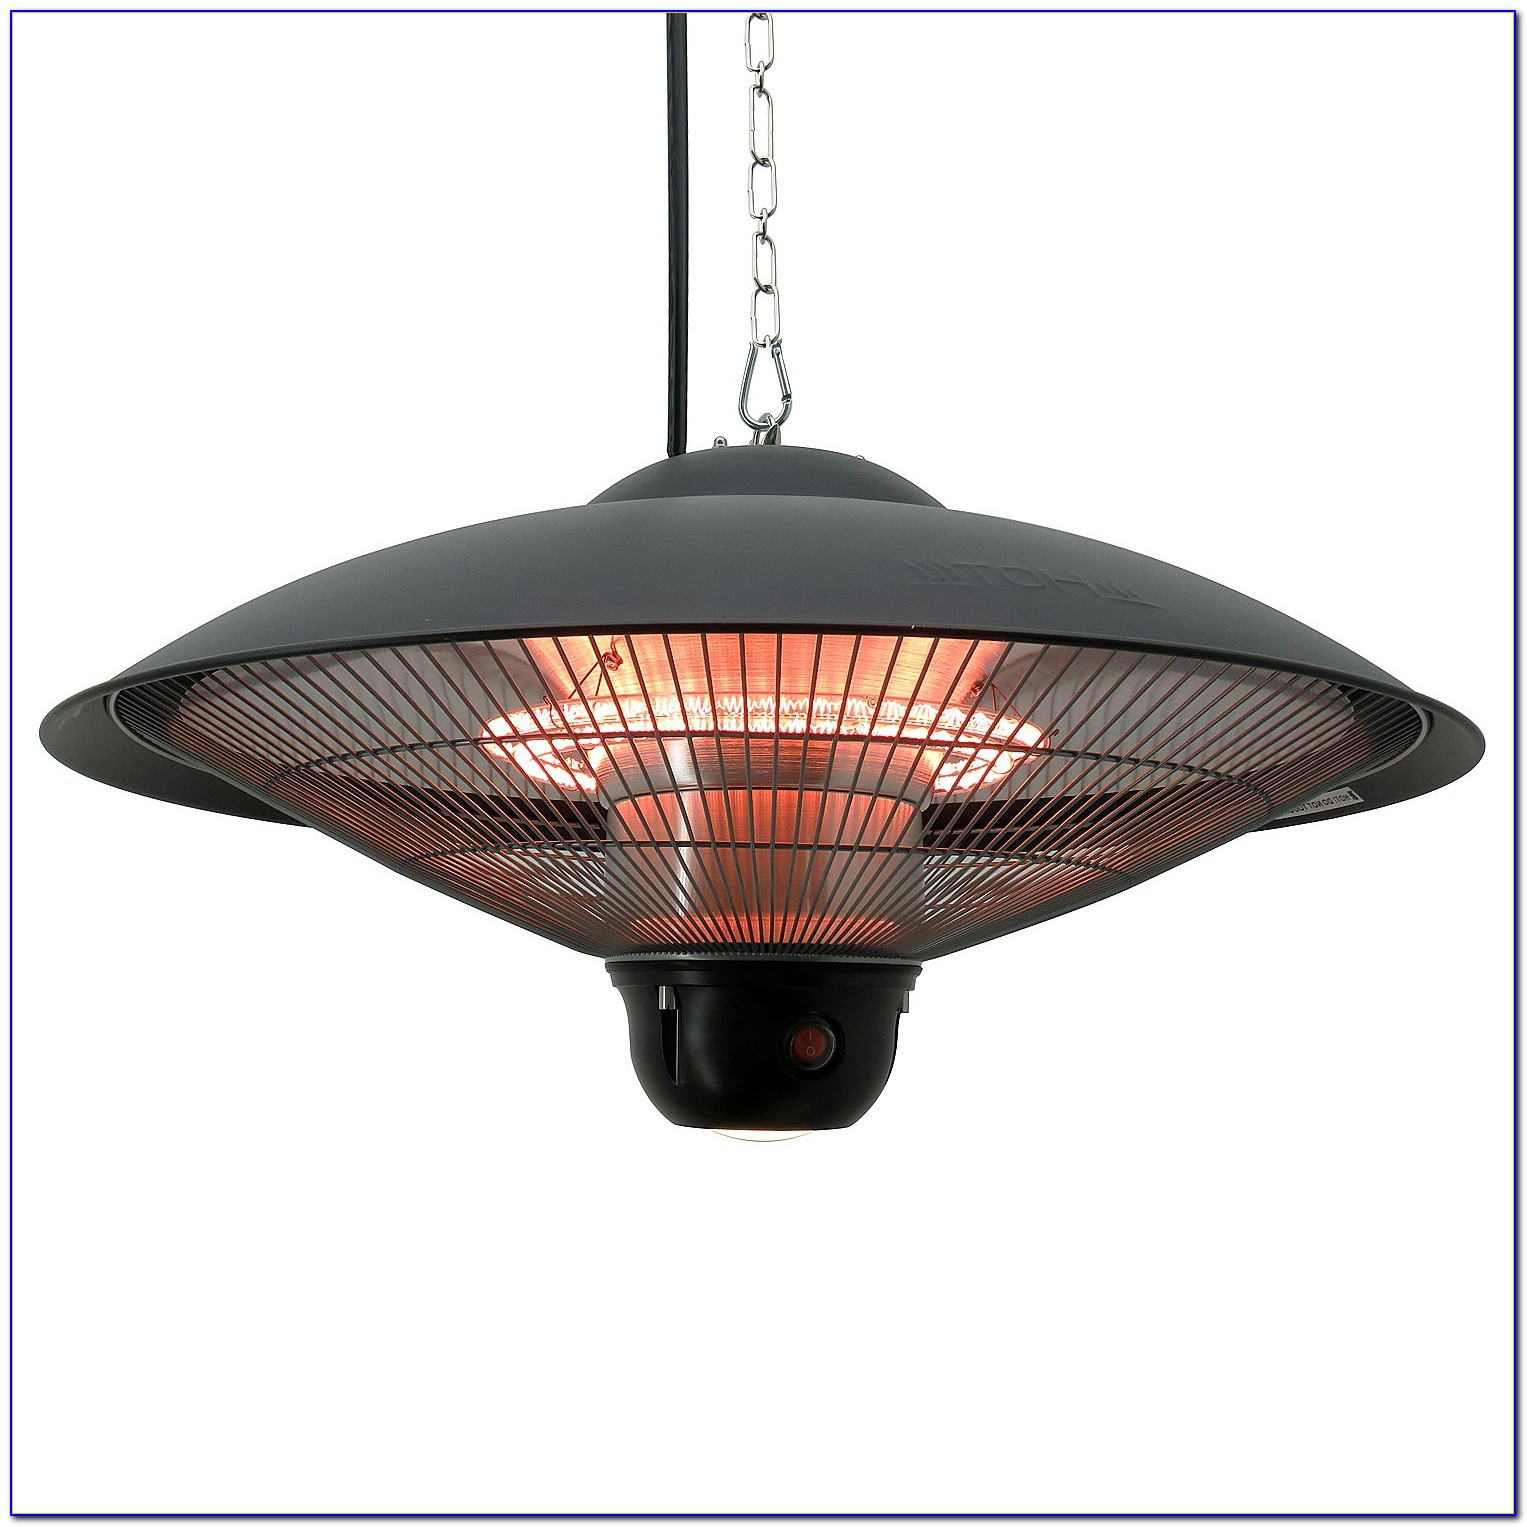 Ceiling Mounted Outdoor Patio Heaters